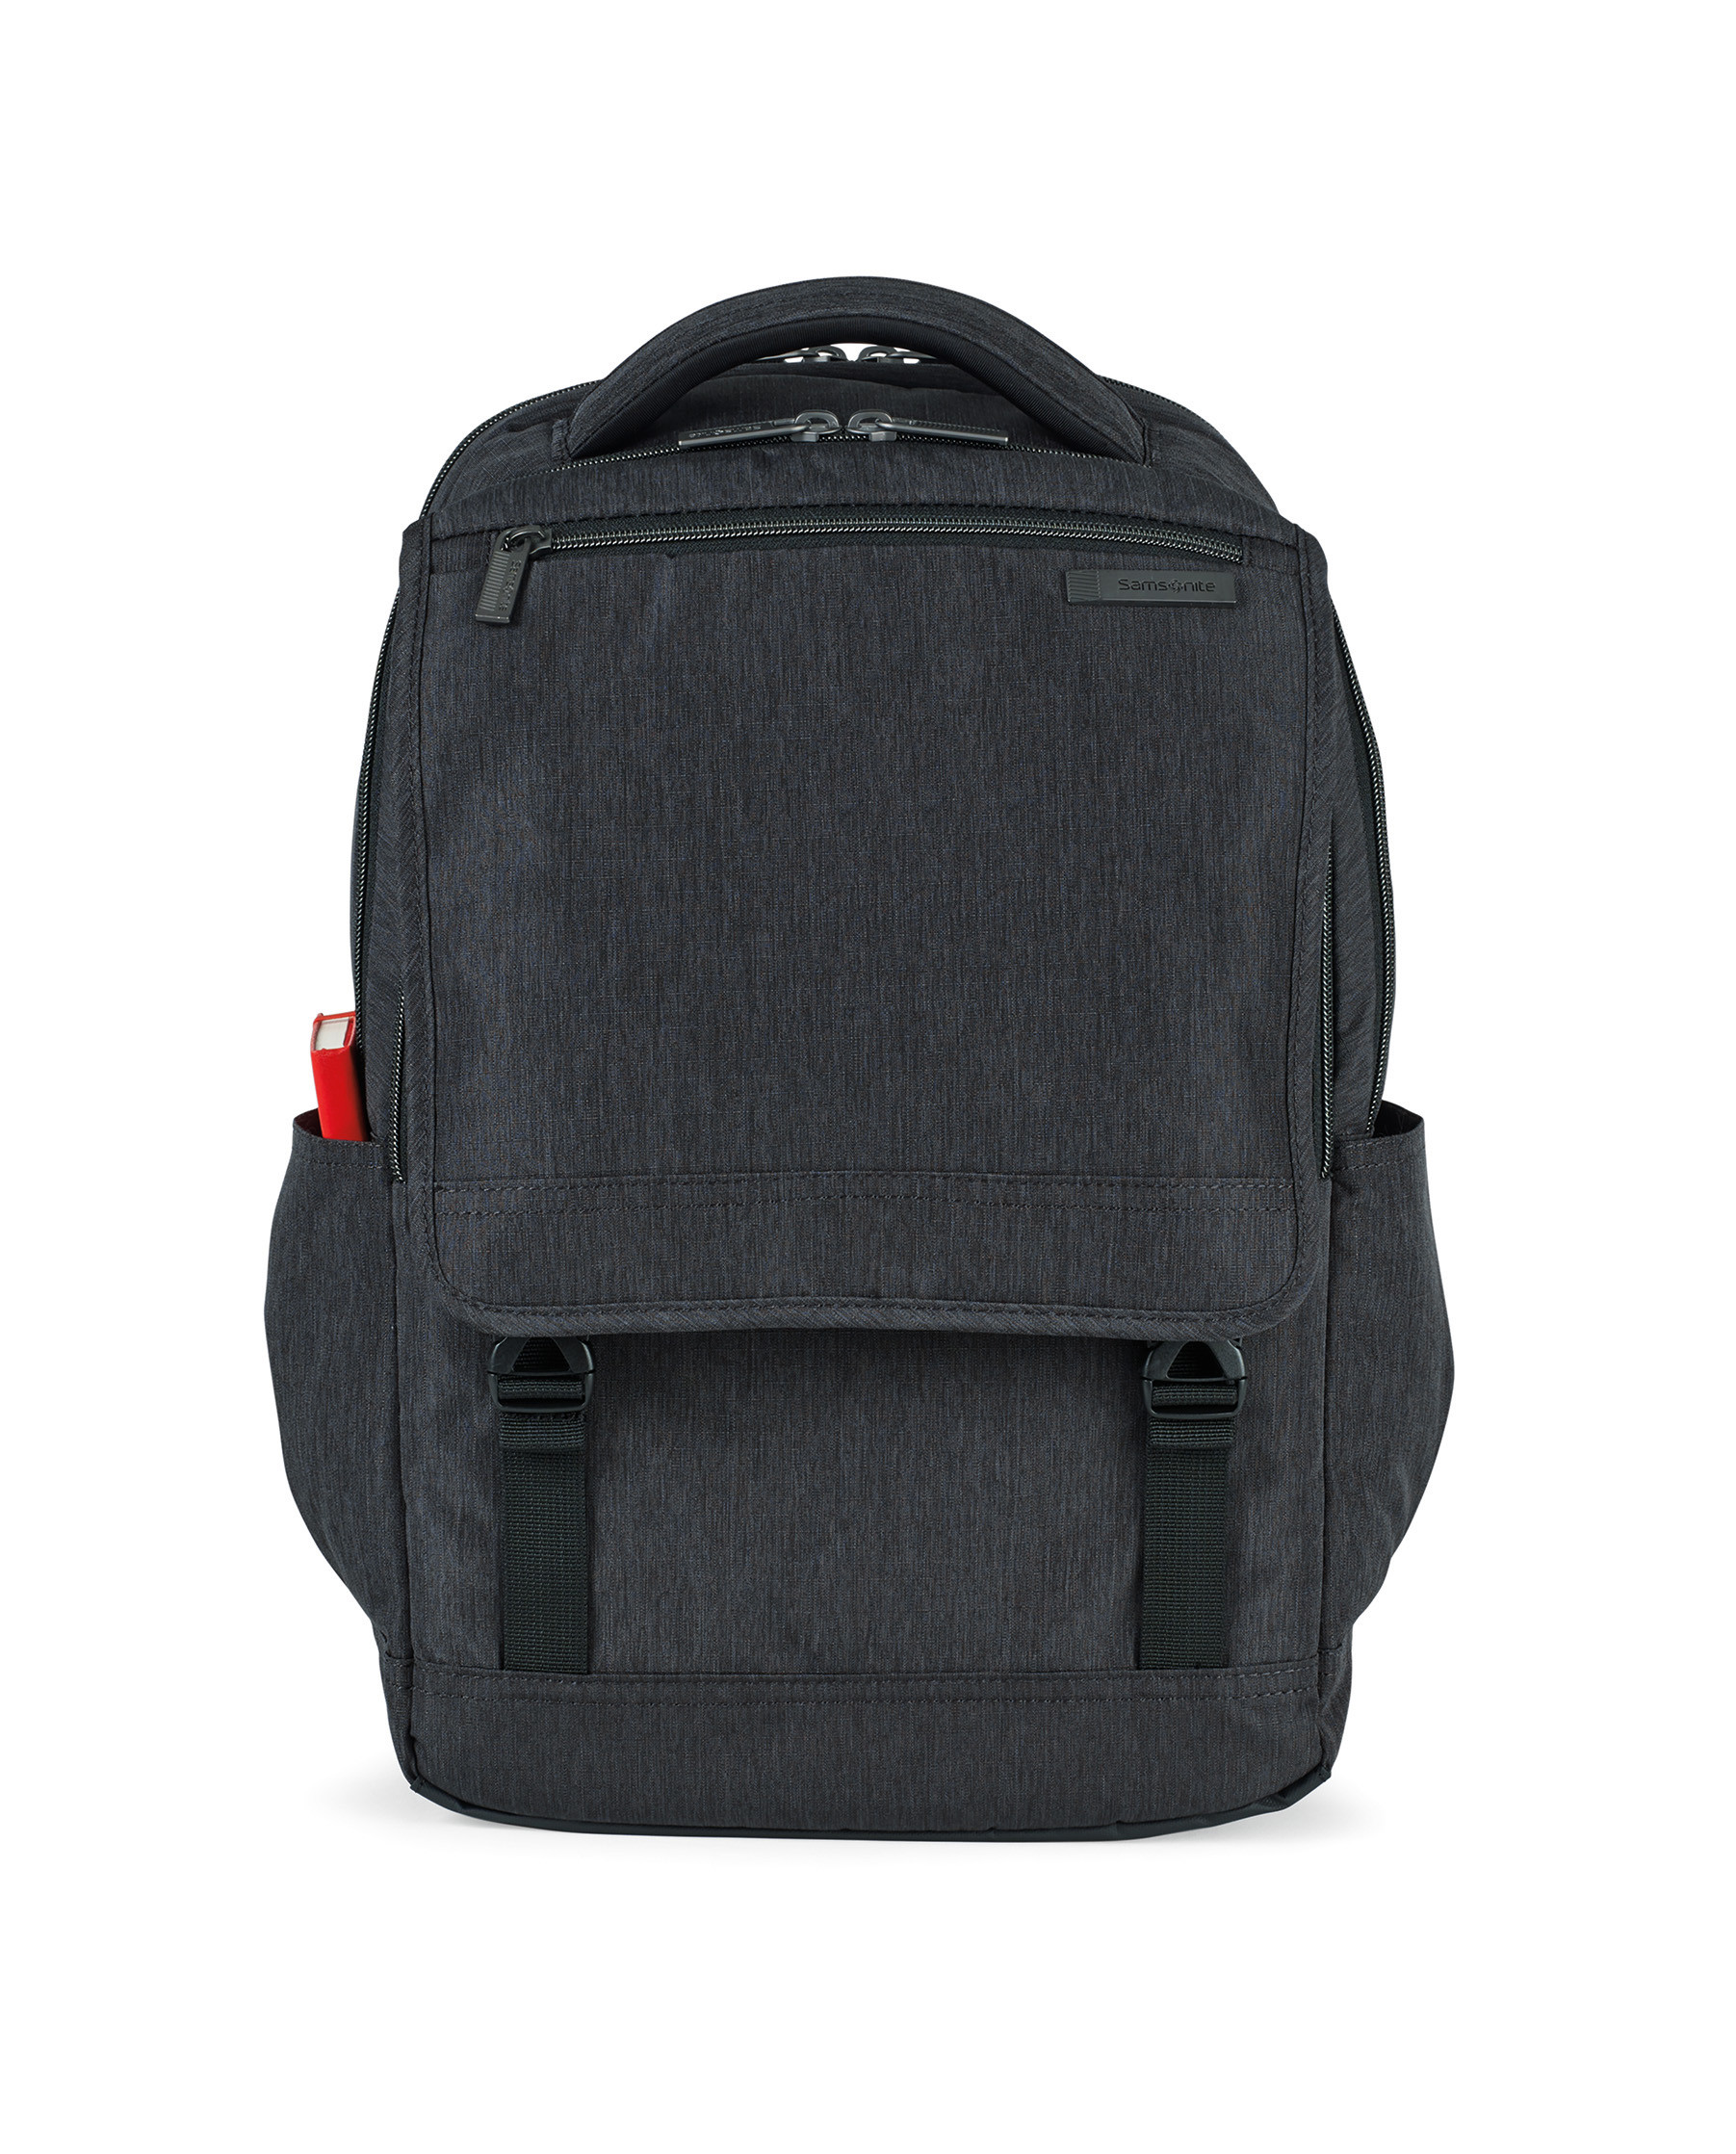 Samsonite 95096 - Modern Utility Paracycle Computer Backpack